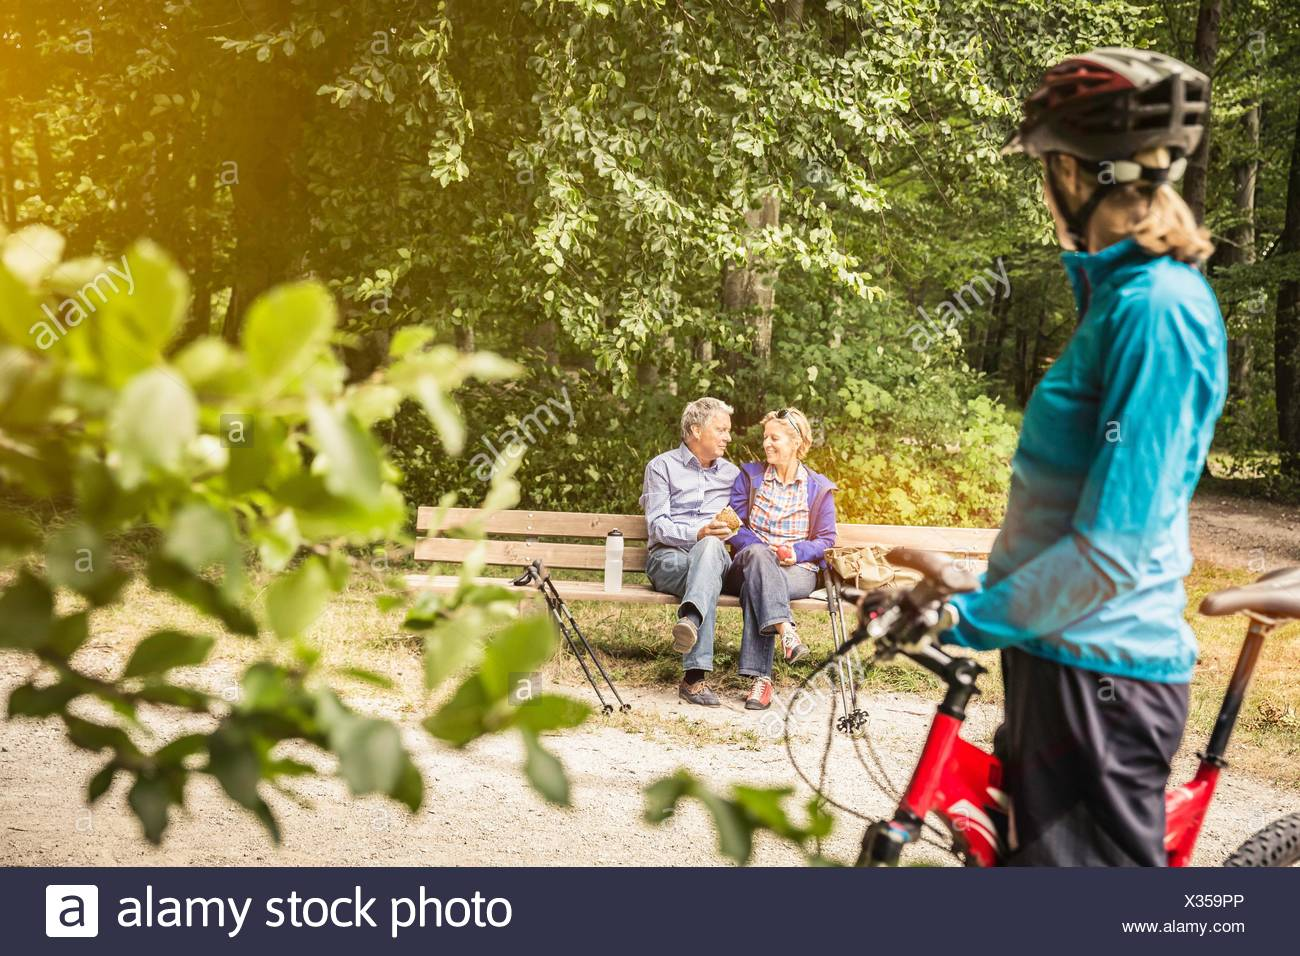 Female mountain biker watching happy couple on park bench - Stock Image